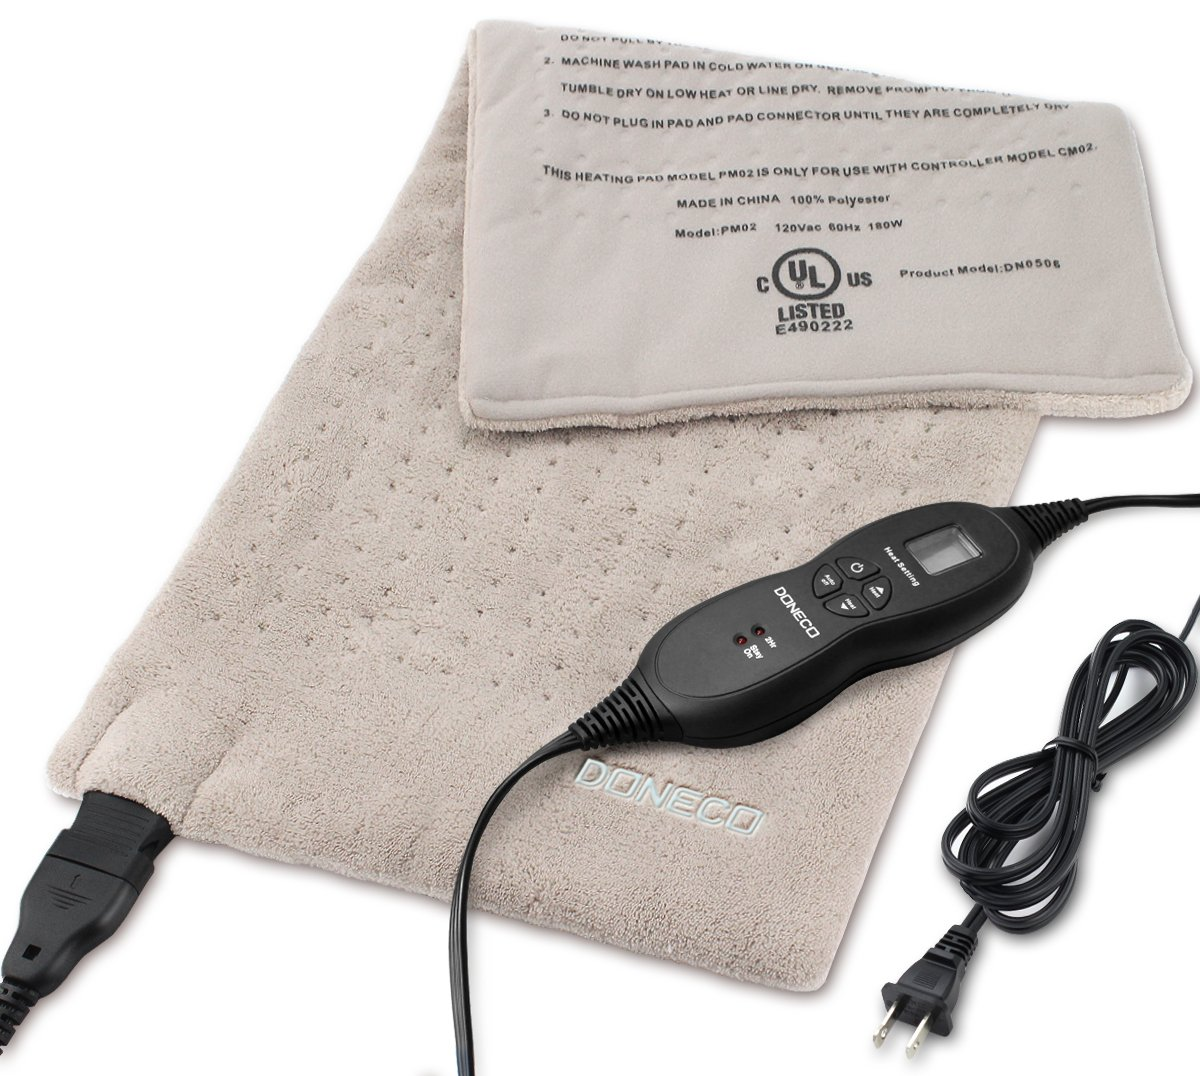 DONECO King Size XpressHeat Heating Pad (12 x 24) - Heat Therapy Helps Reduce Muscle Cramps and Soreness - Features 6 Temperature Settings and Adjustable LCD Controller - Machine Washable Microplush